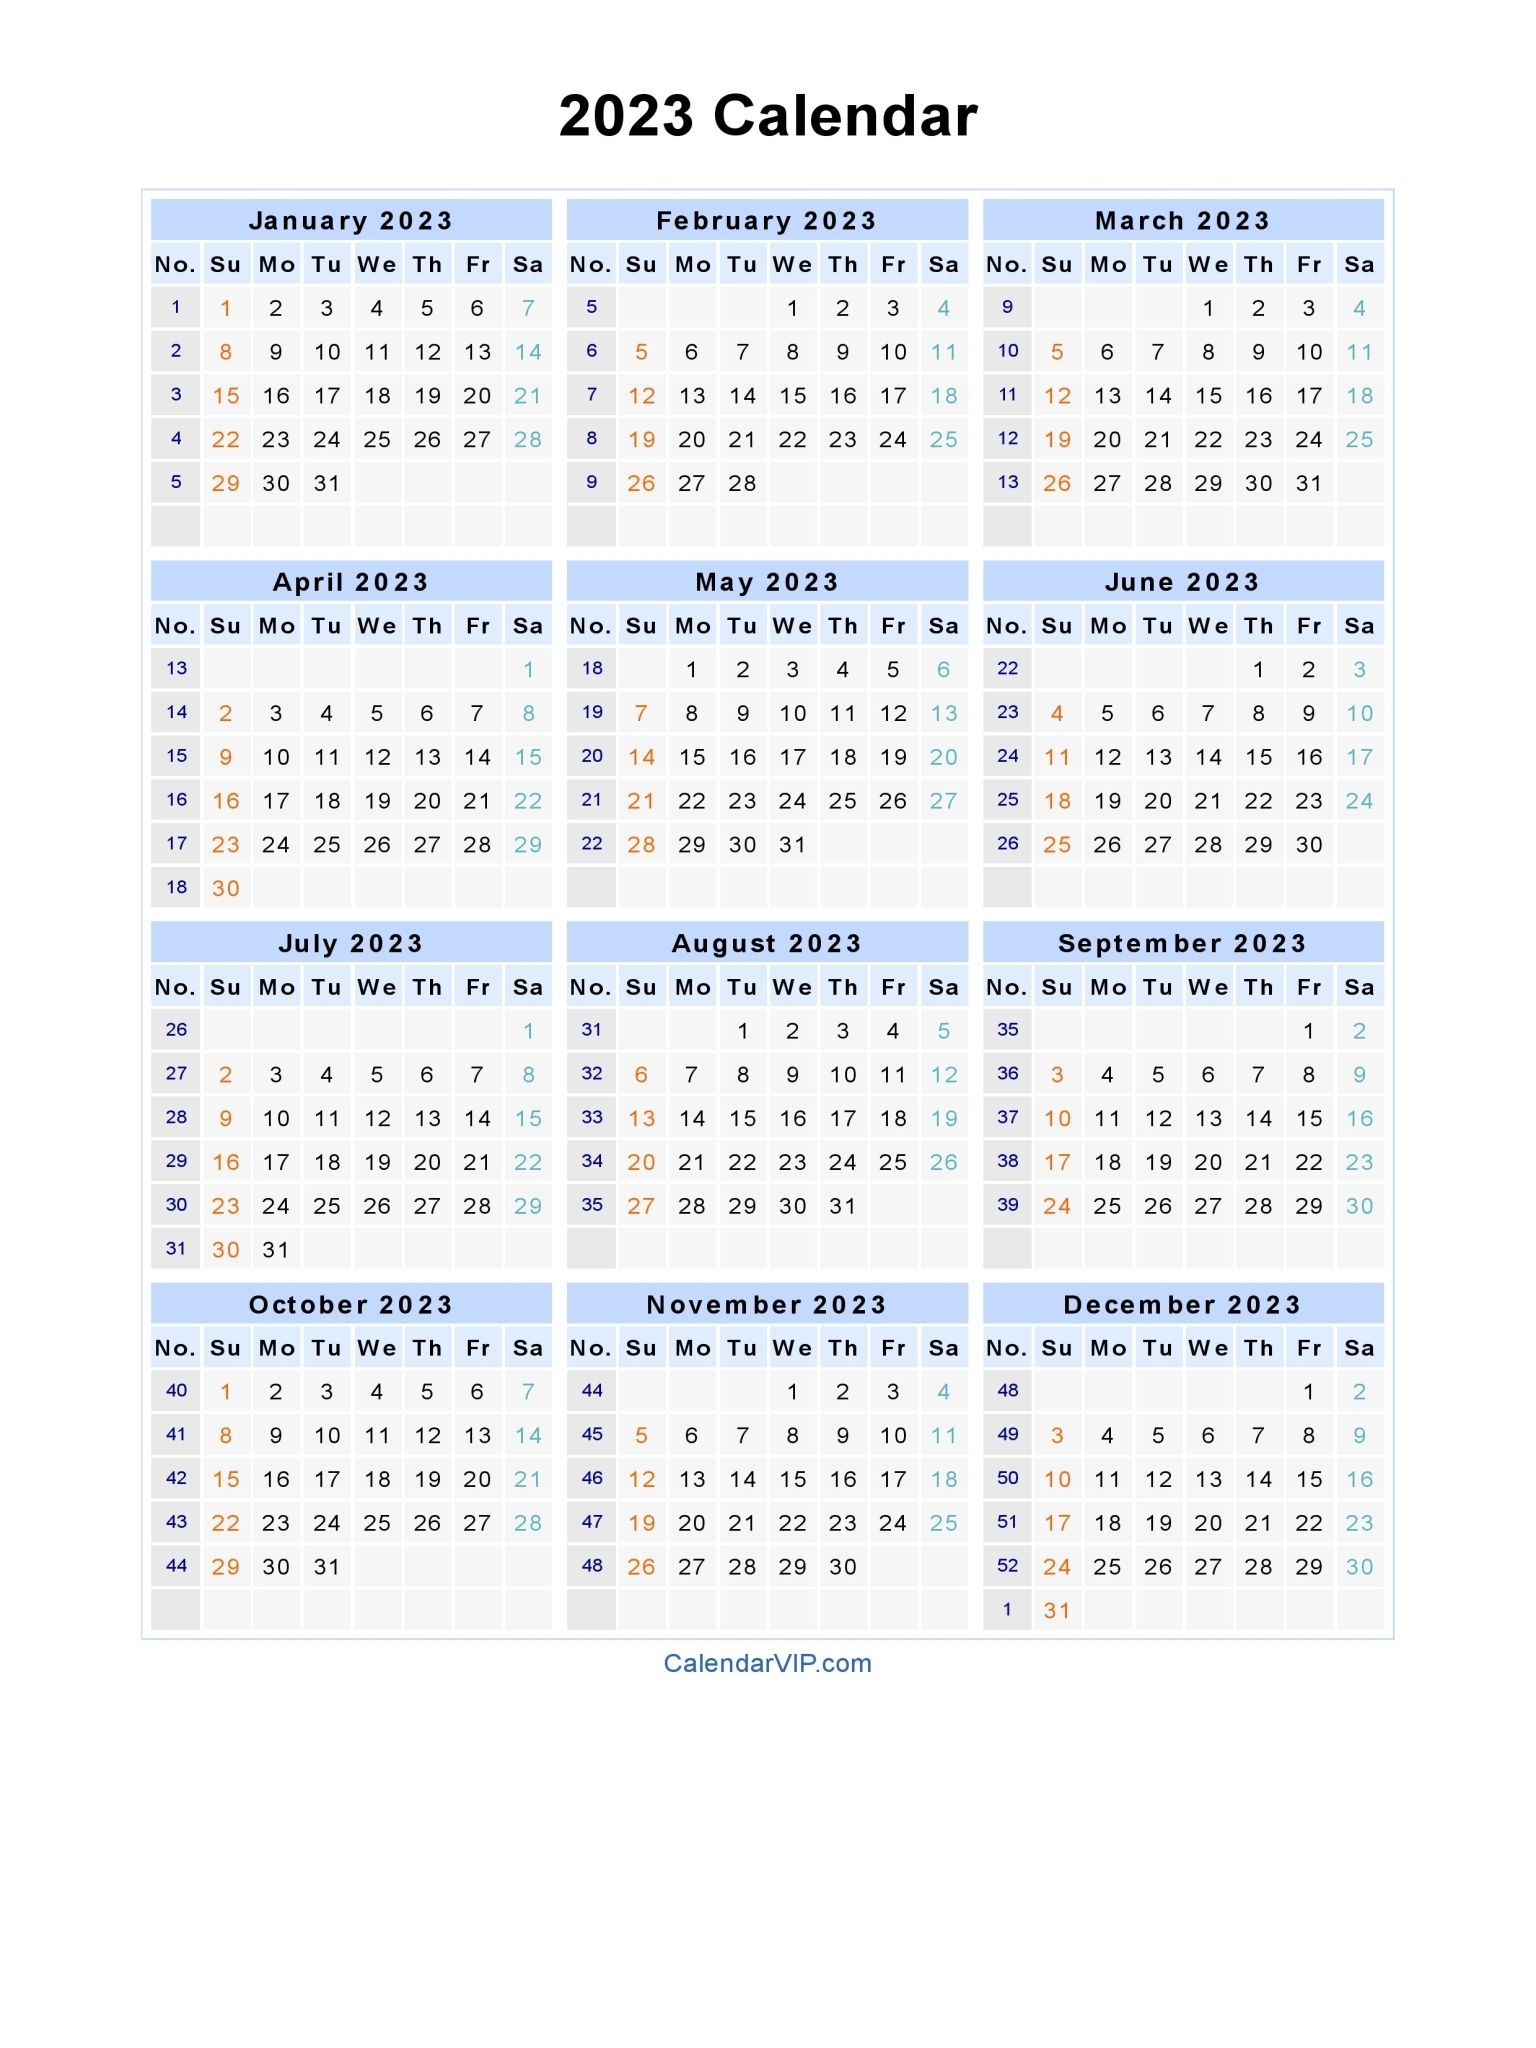 2023 Calendar - Blank Printable Calendar Template In Pdf with regard to 1 Page Printable 2023 Calendar